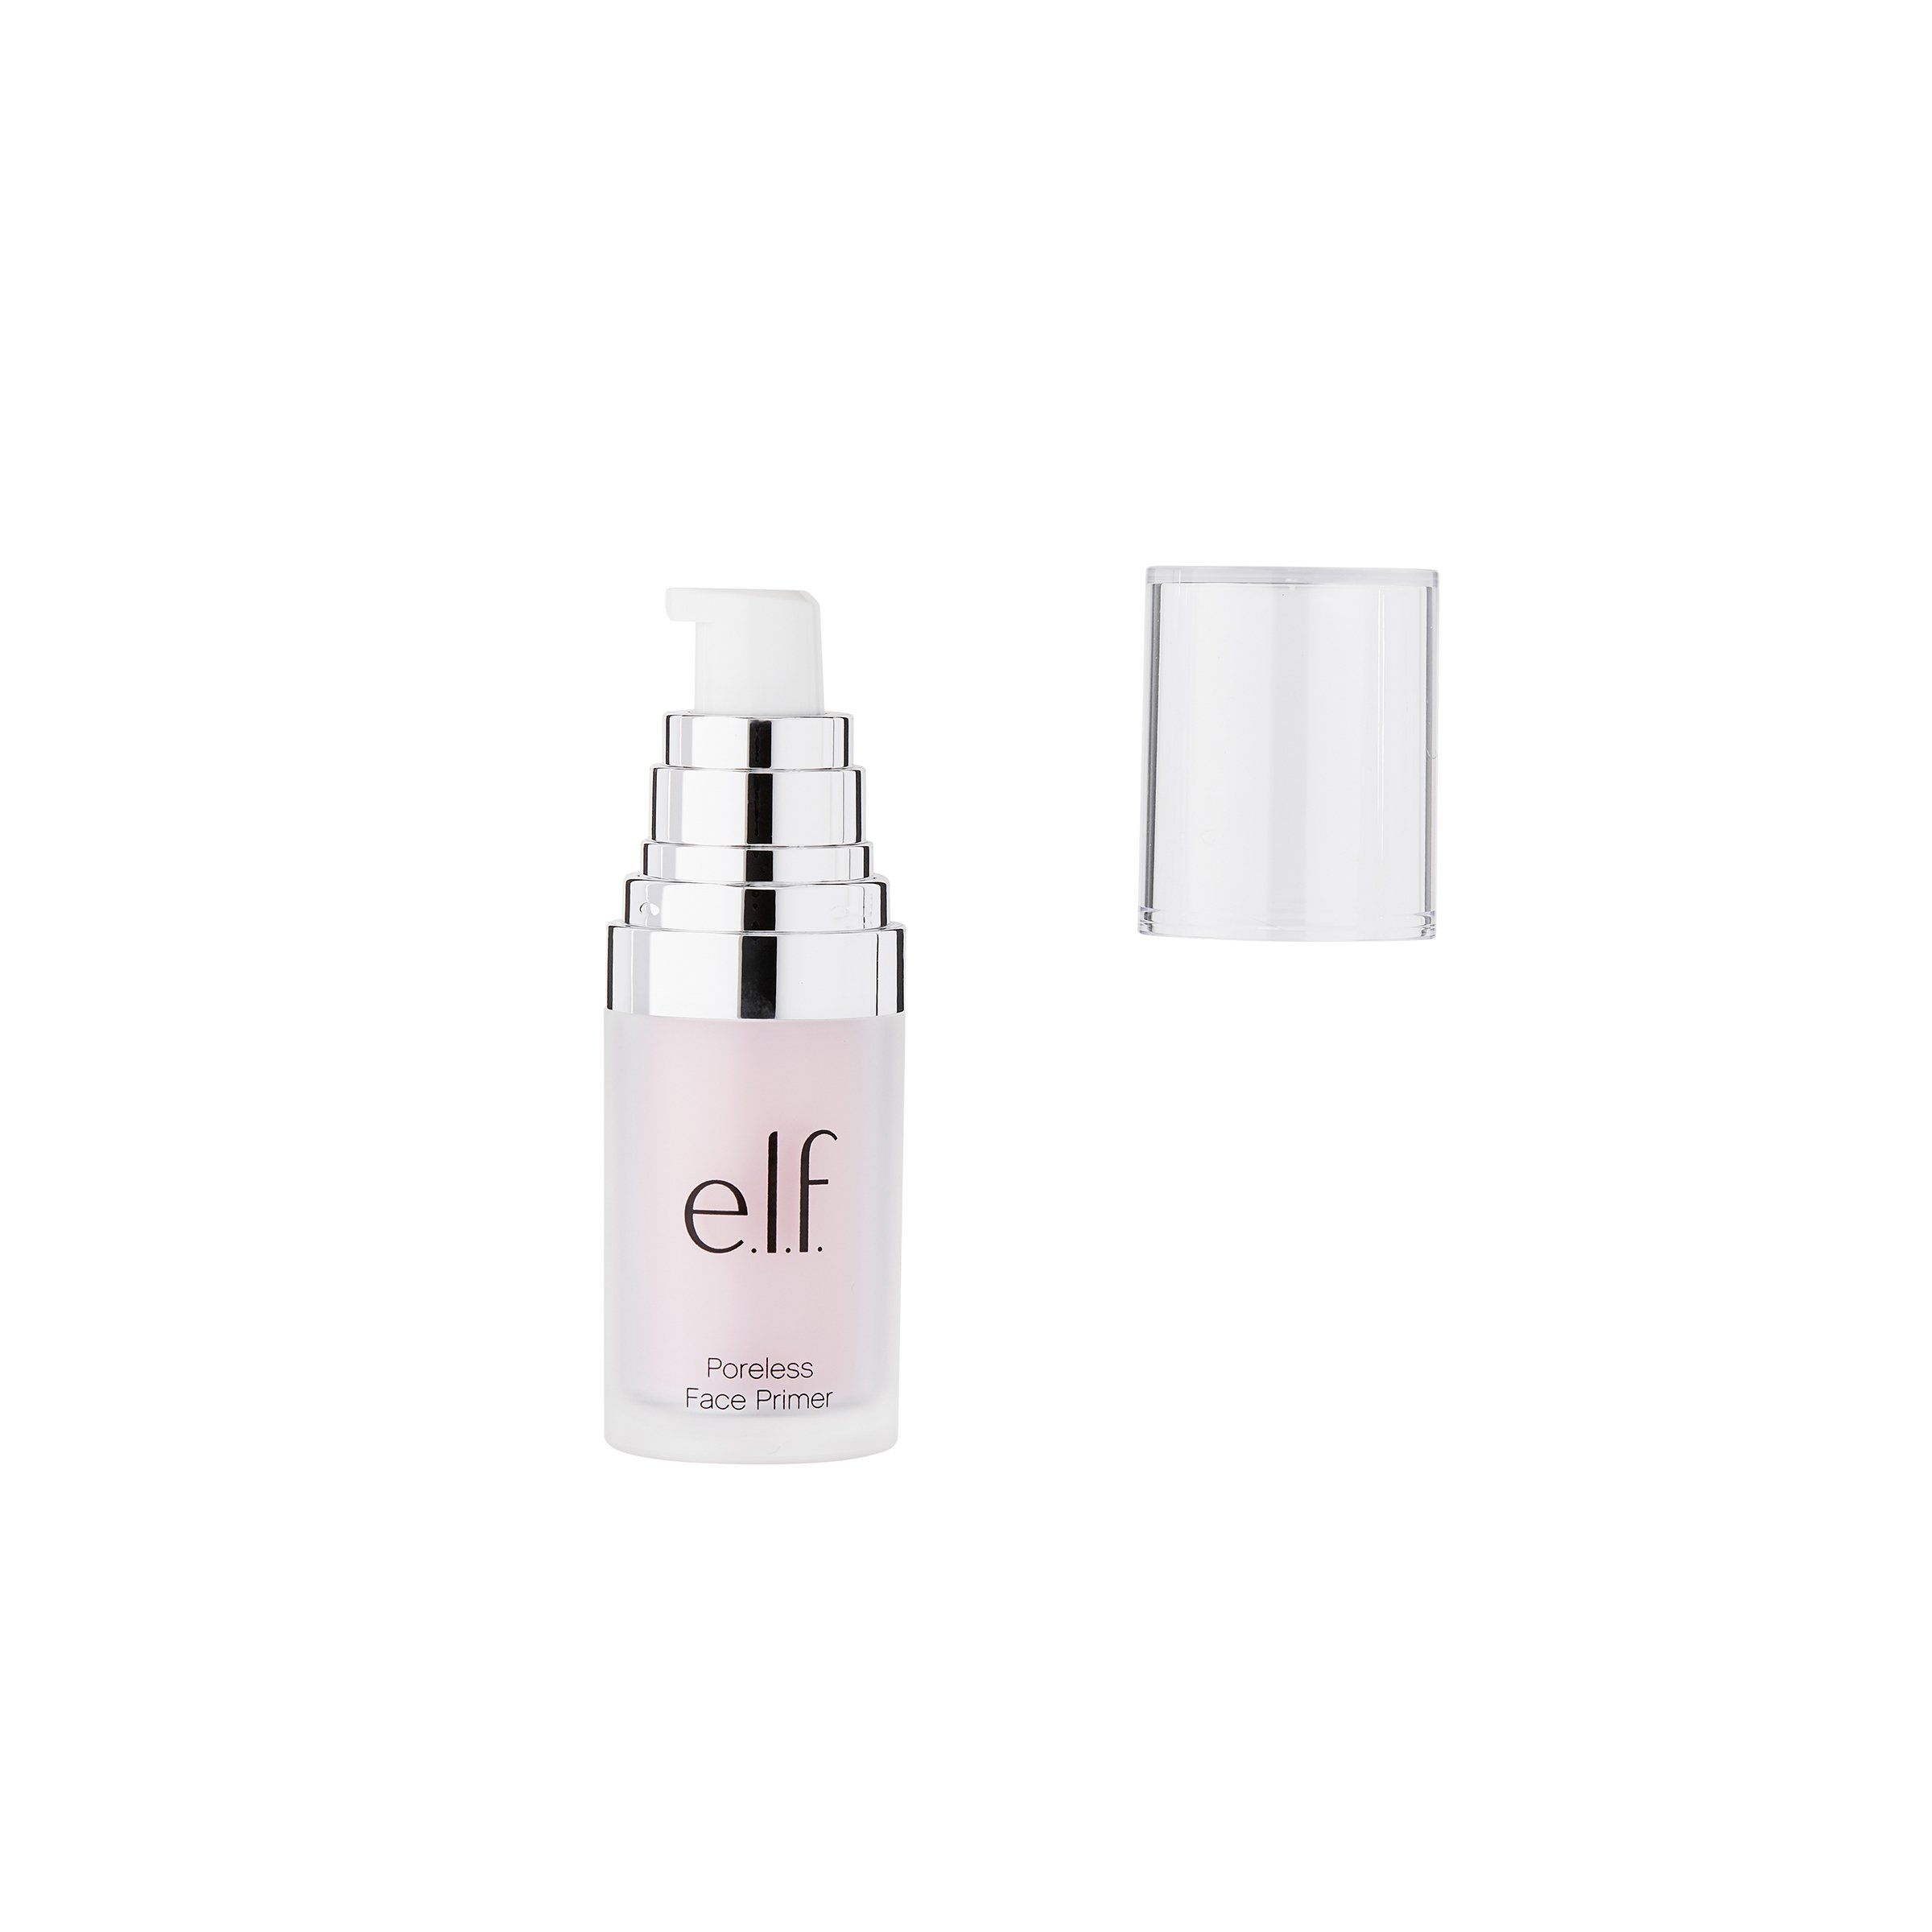 E.l.f. Poreless Primer, 0.47 Fluid Ounce